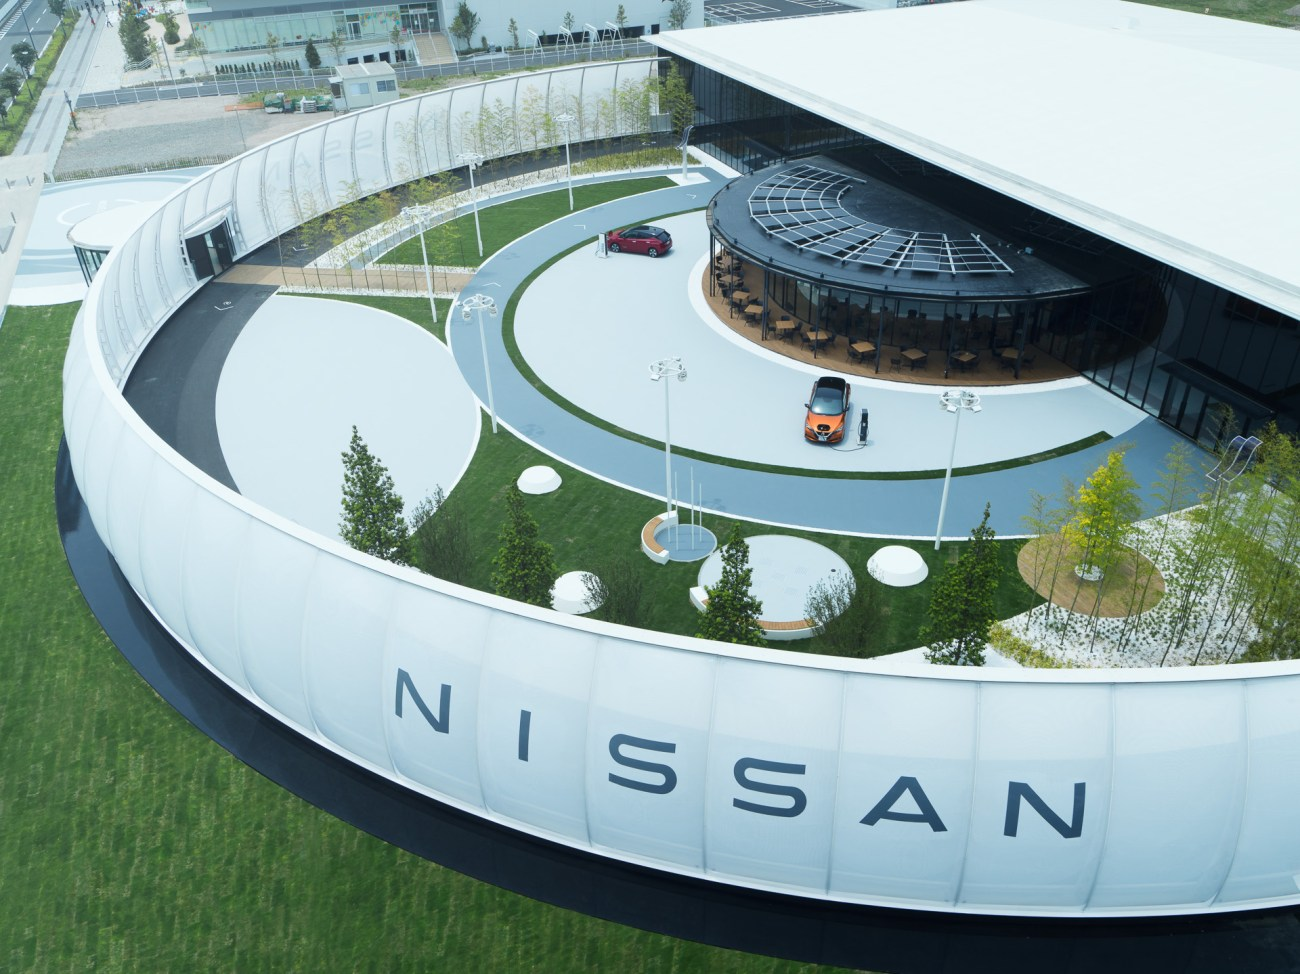 200731-01_Nissan_Pavilion-035-source